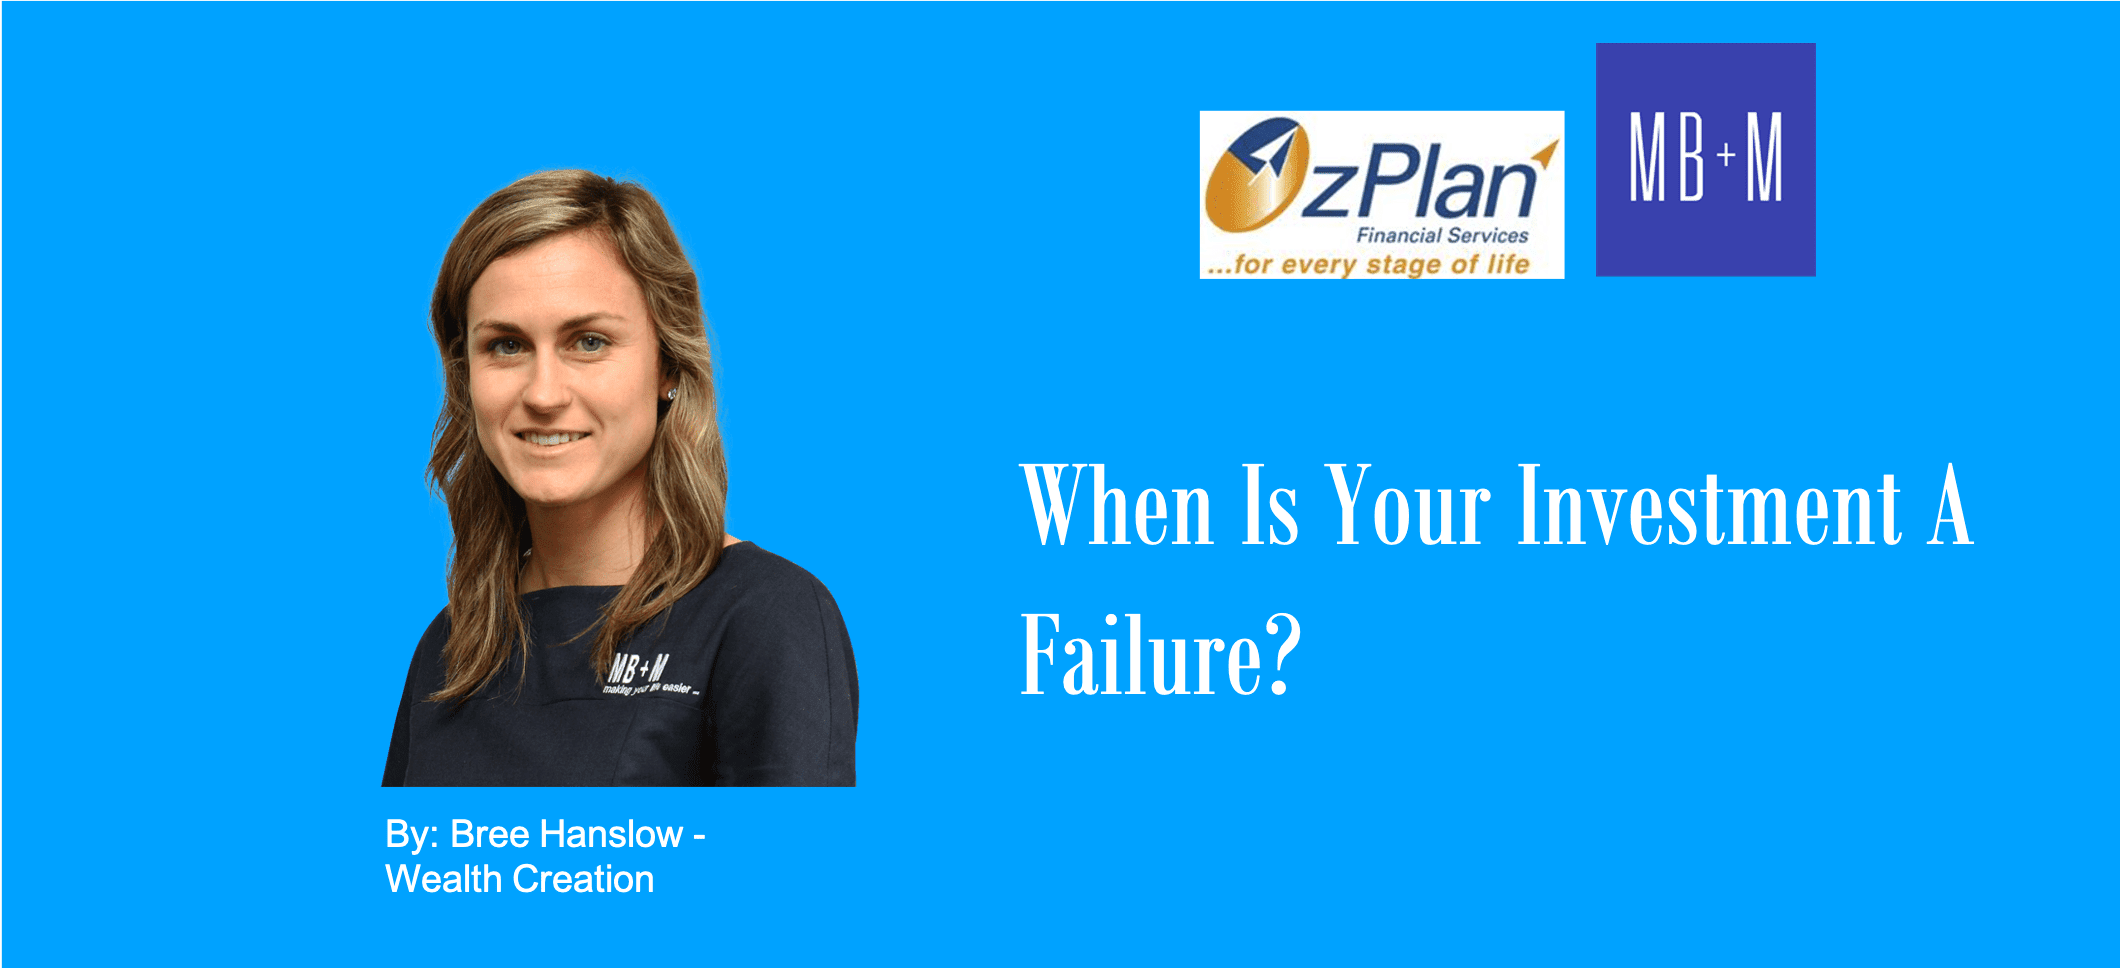 When is your investment a failure?